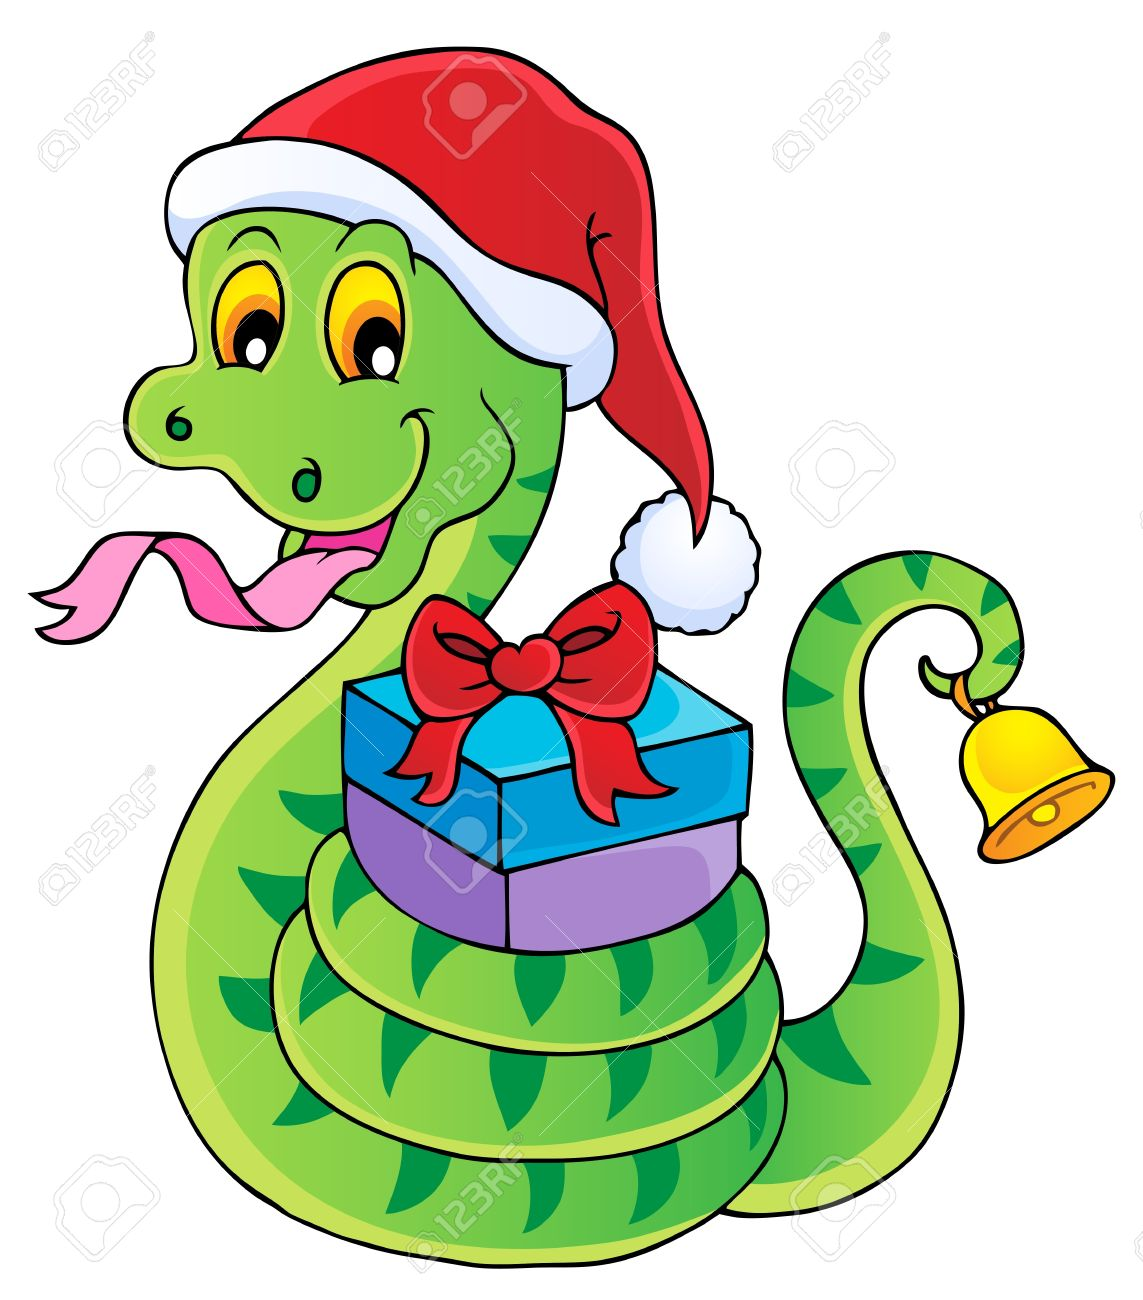 Christmas snake theme image 1 - vector illustration Stock Vector - 16503844